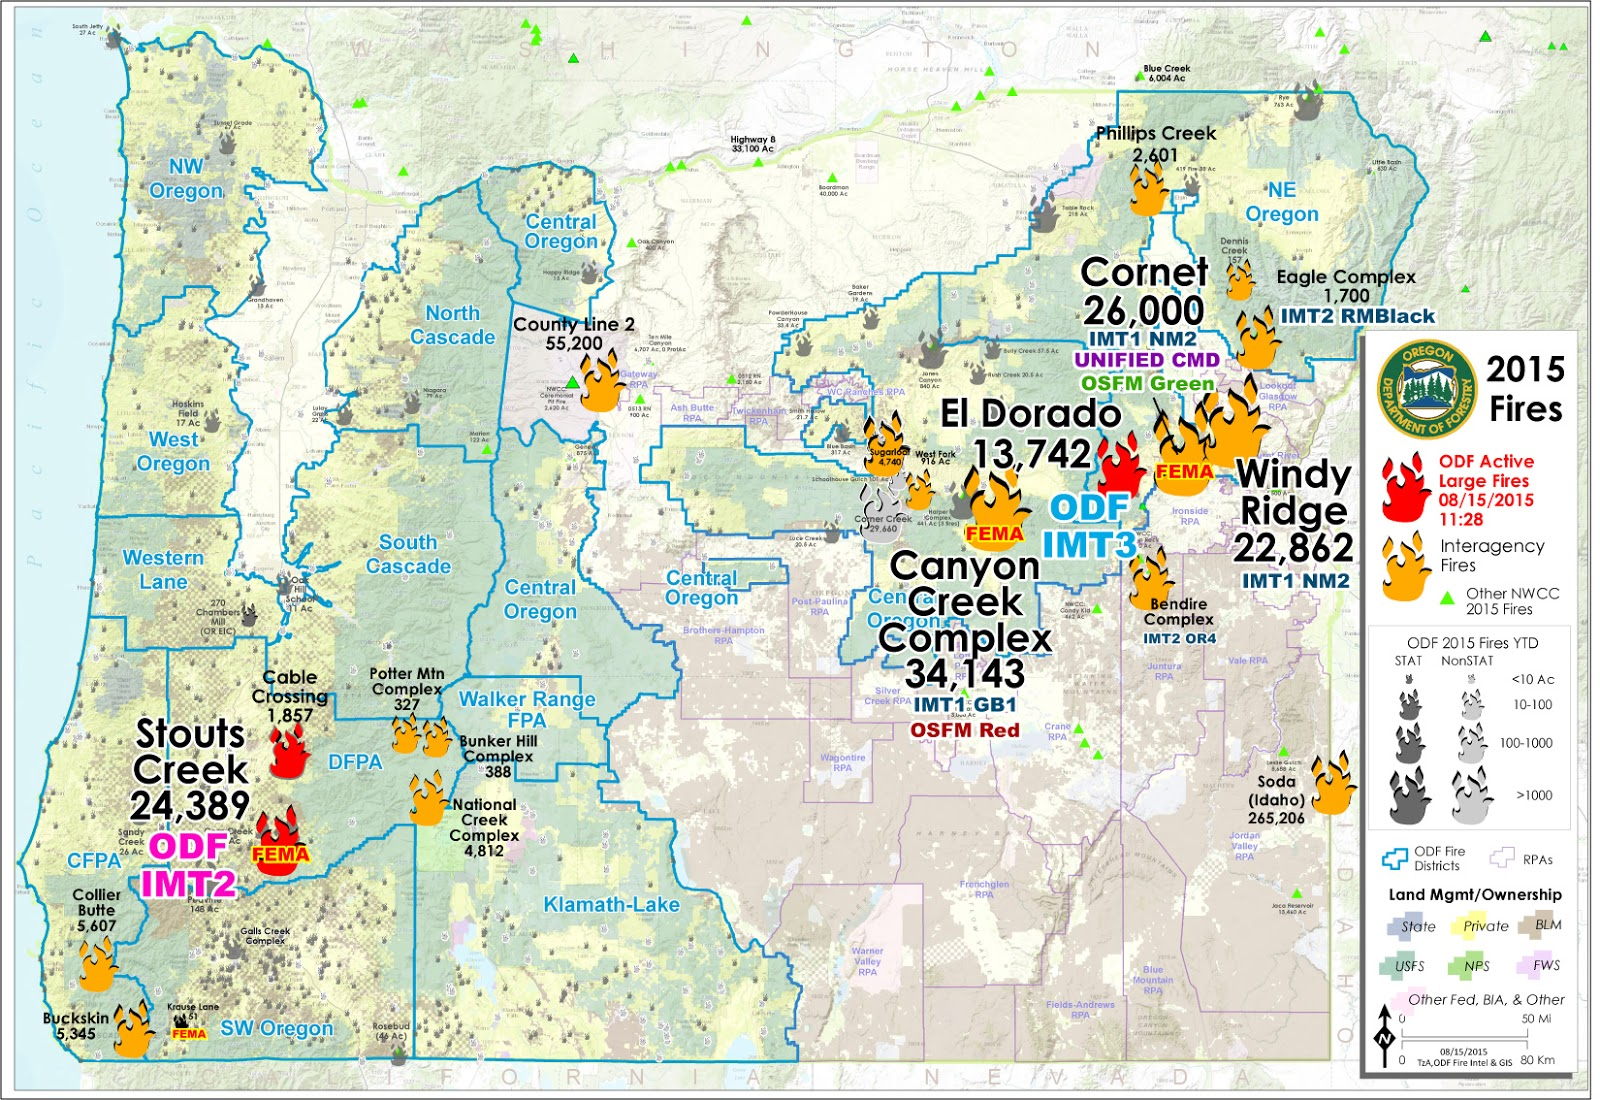 Large Wildfire Map.Wildfire Oregon Dept Of Forestry Large Fire Map